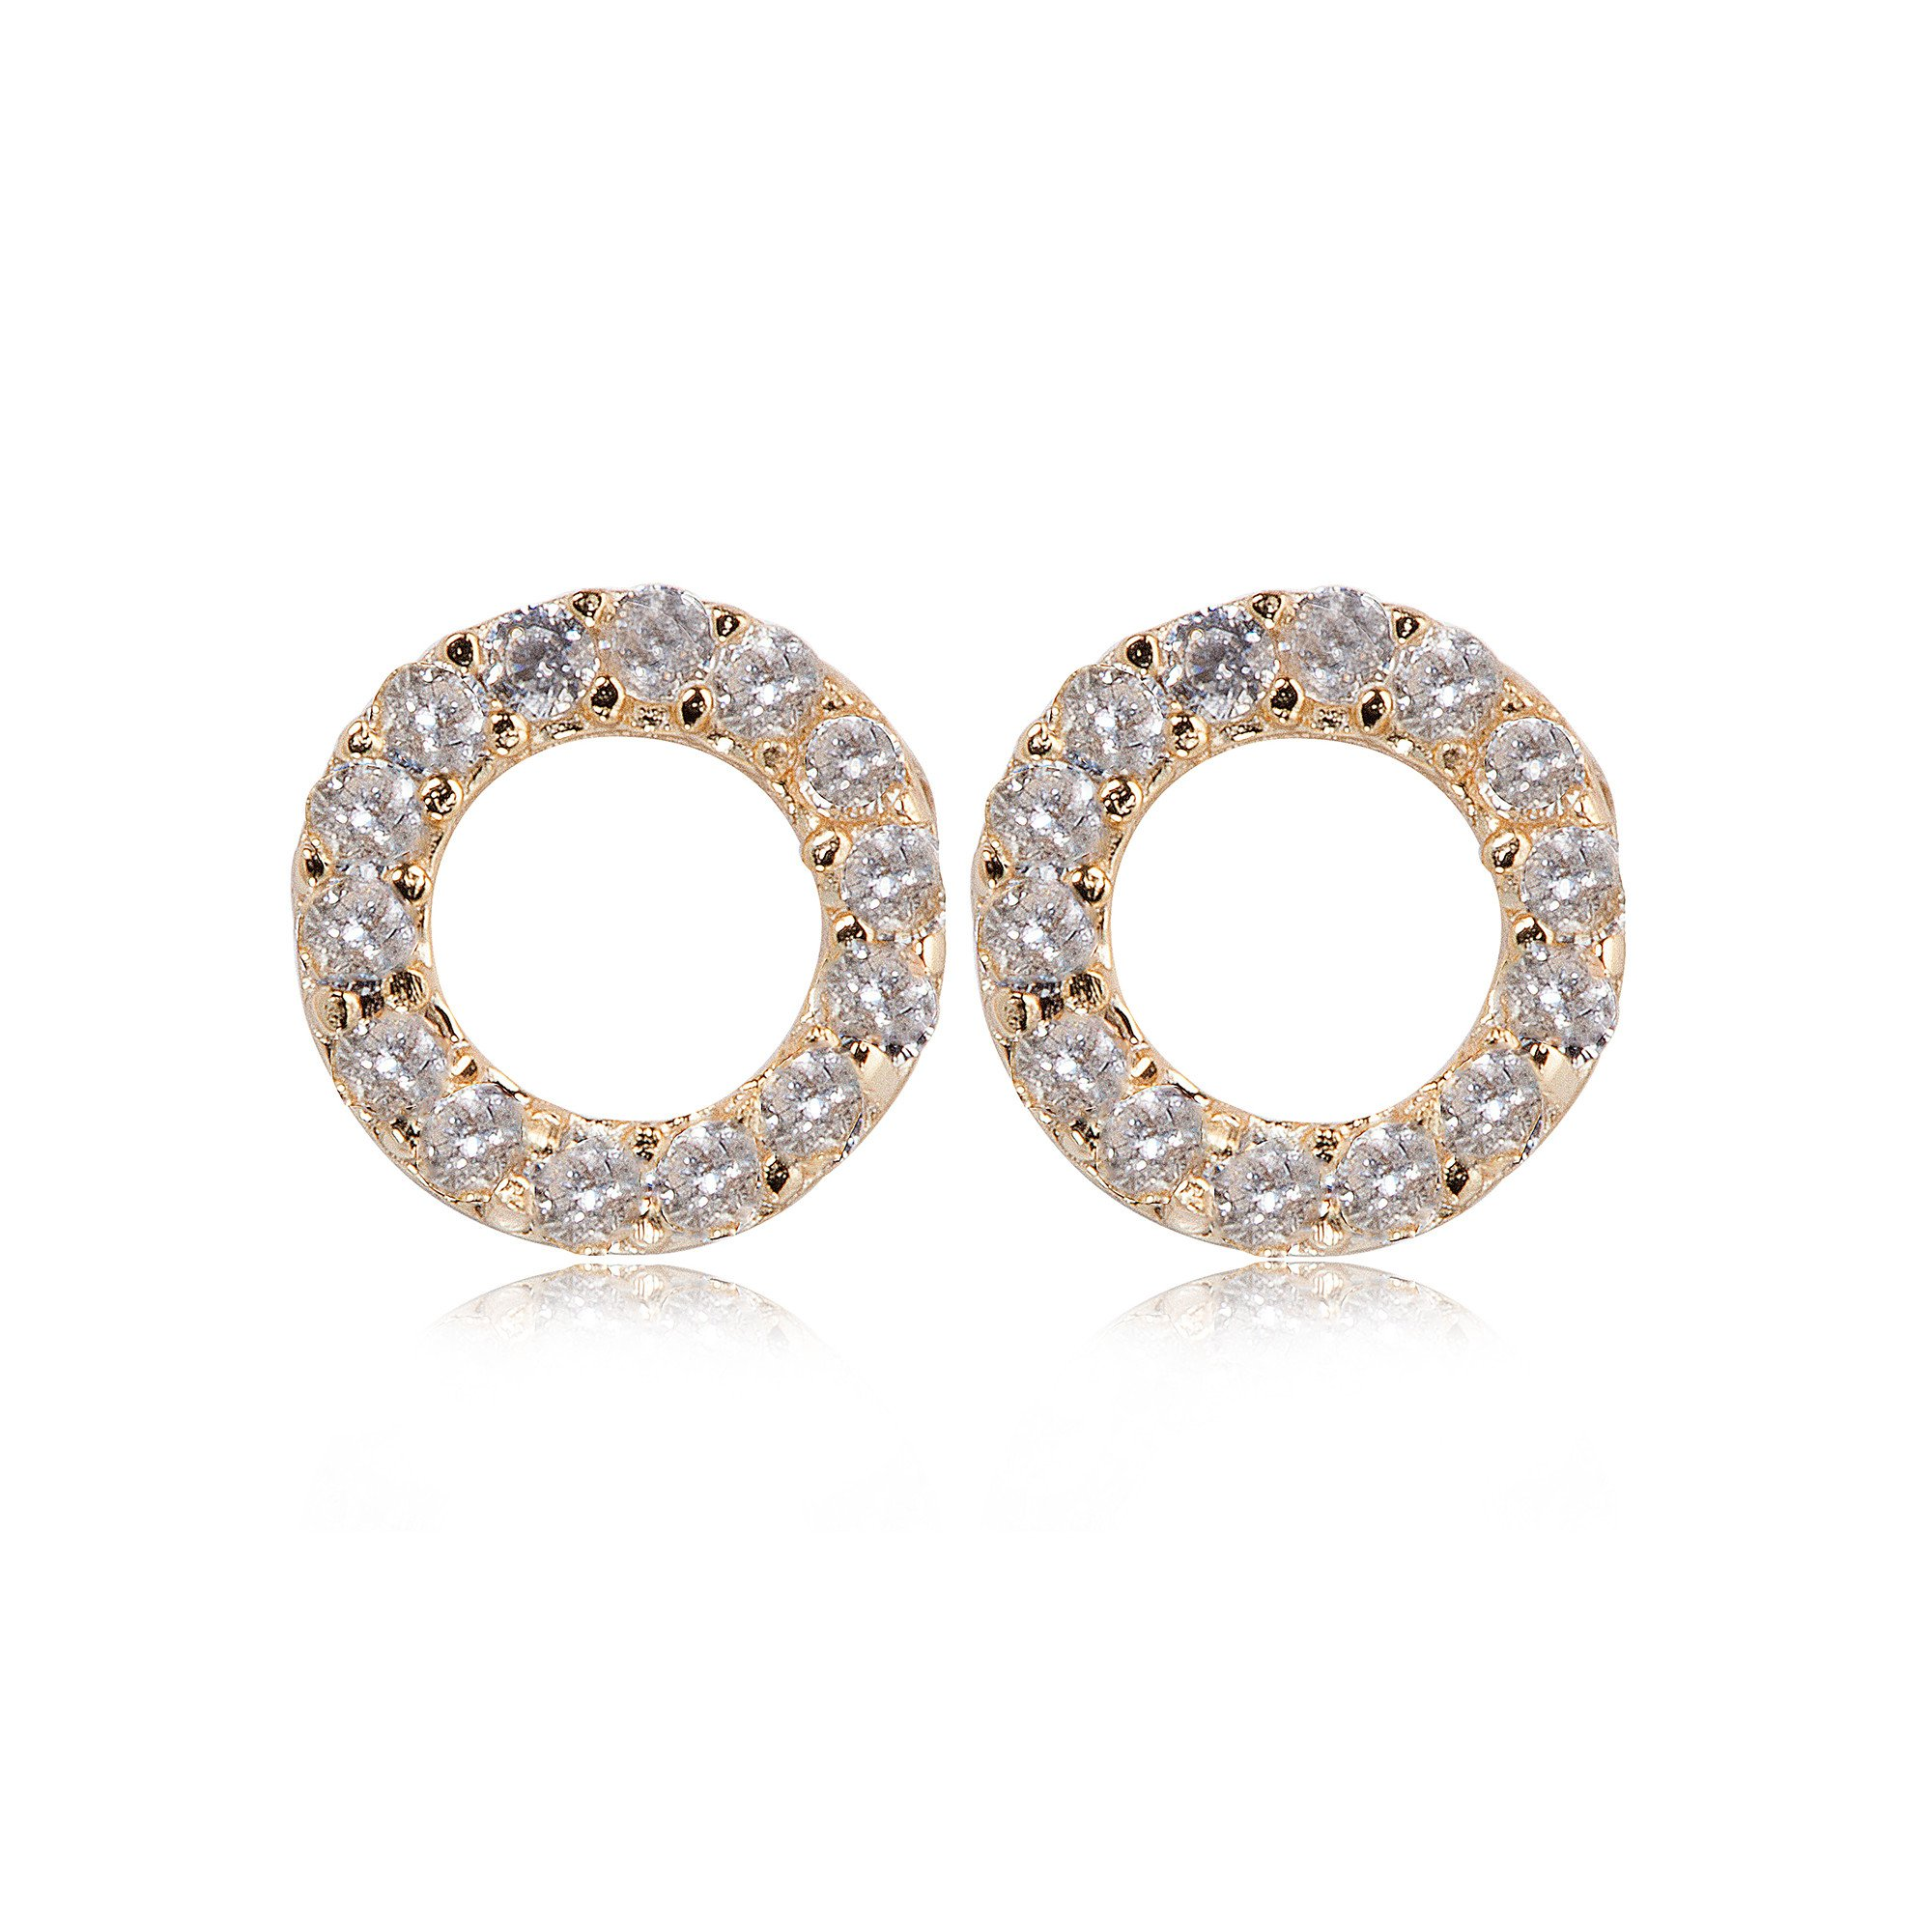 Stud Earrings Pave Open Circle CZ - Gold Plated on Sterling Silver EG-45/G